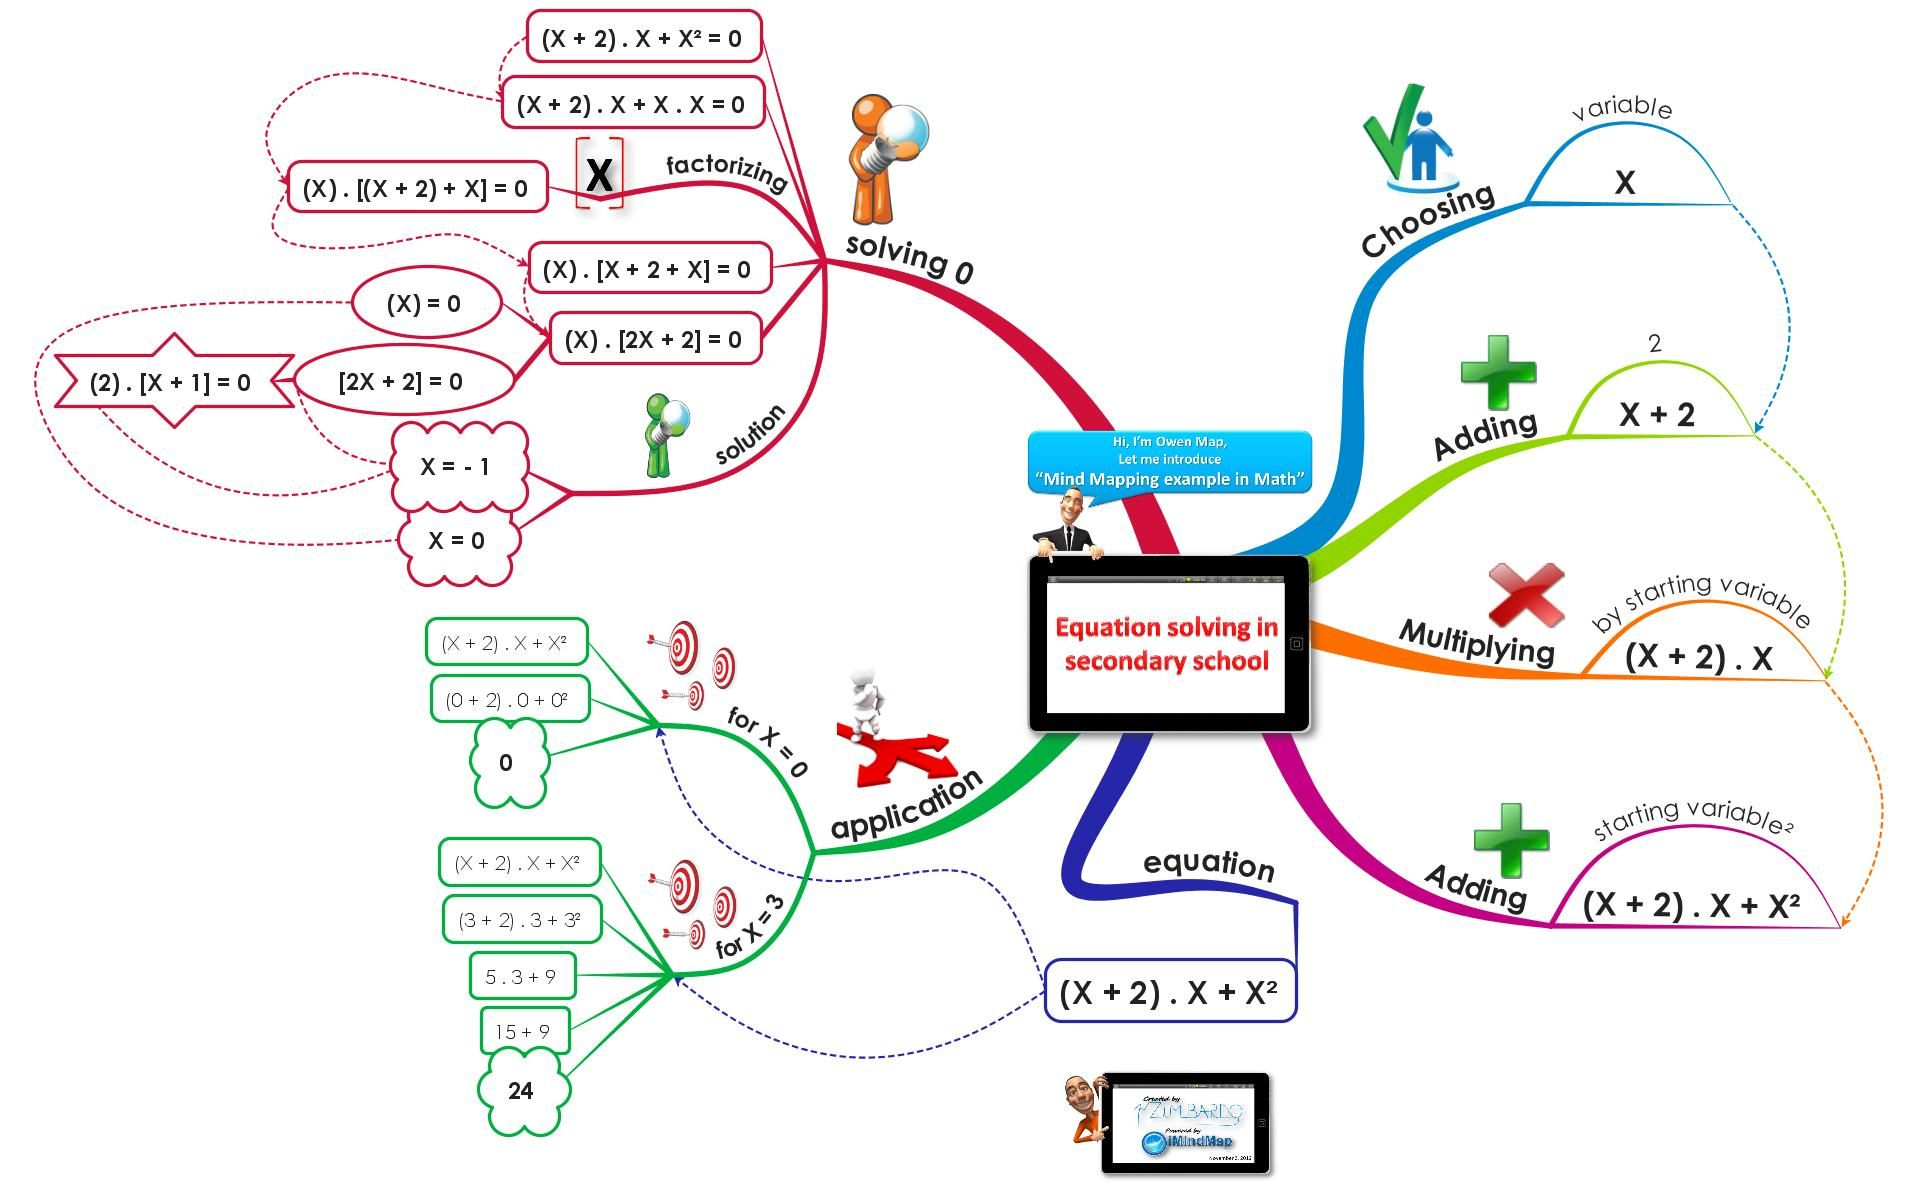 medium resolution of example of mind map in equation solving math course secondary school